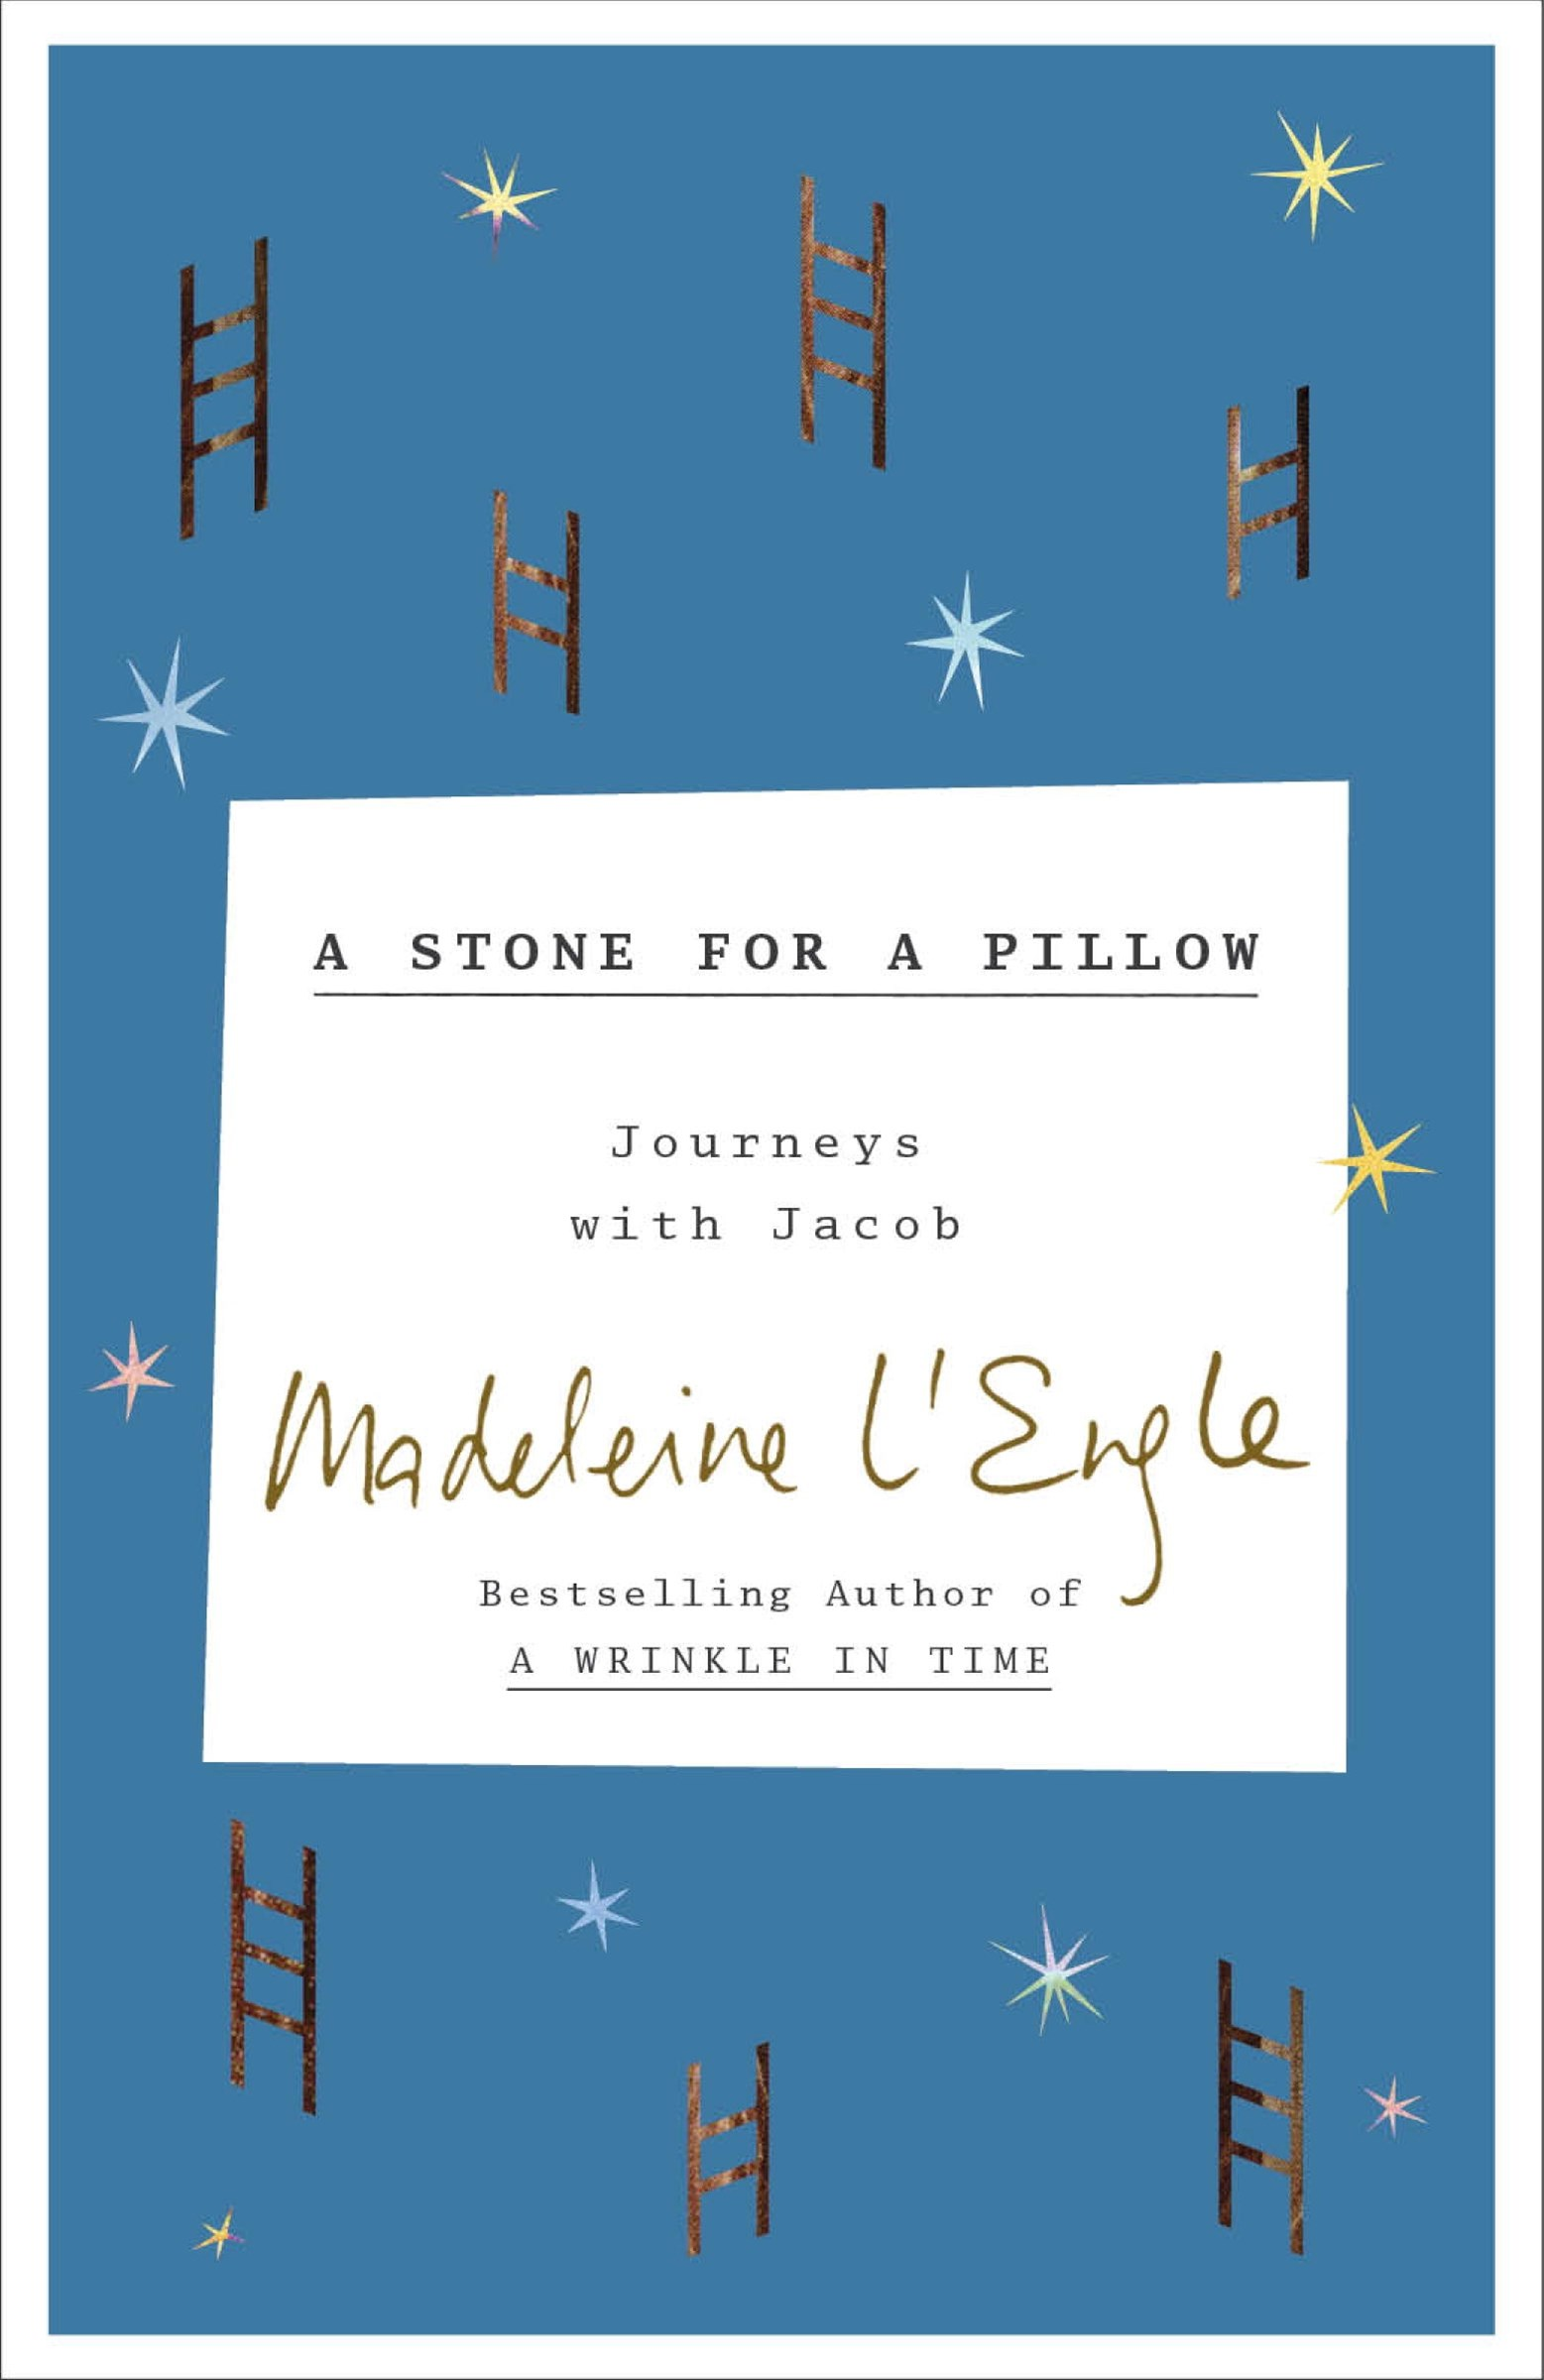 A Stone For A Pillow